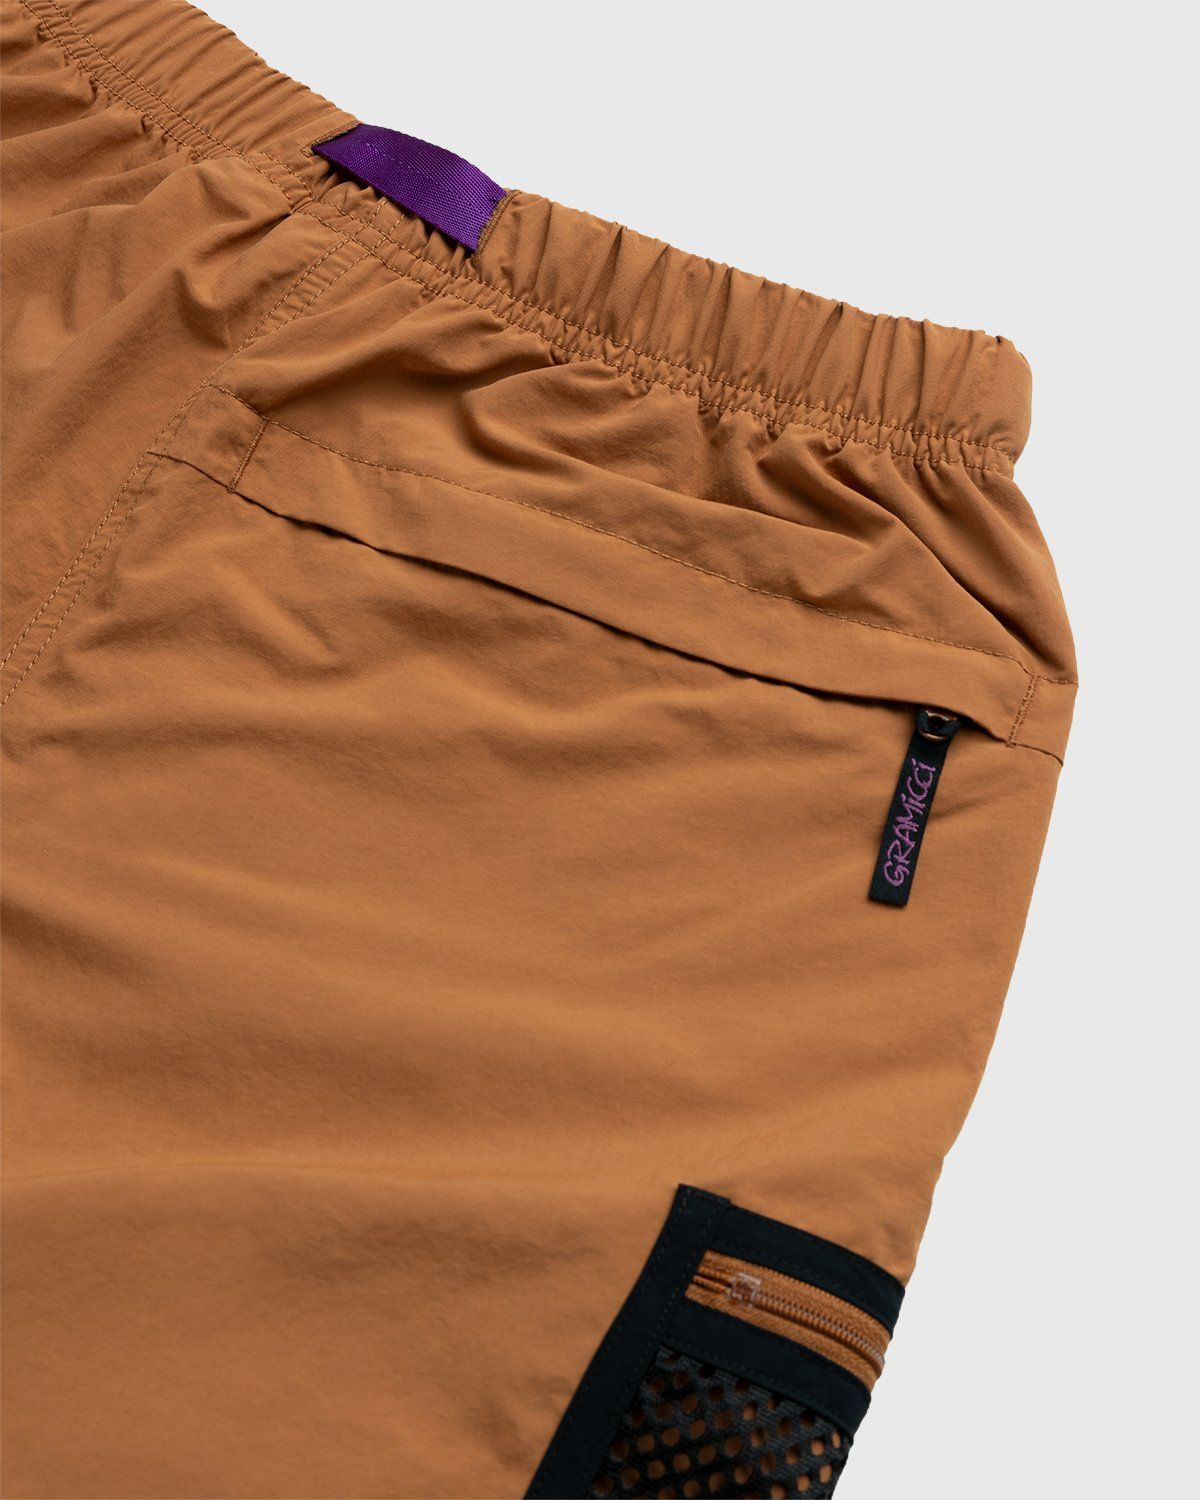 Gramicci for Highsnobiety – Shorts Rust - Image 6